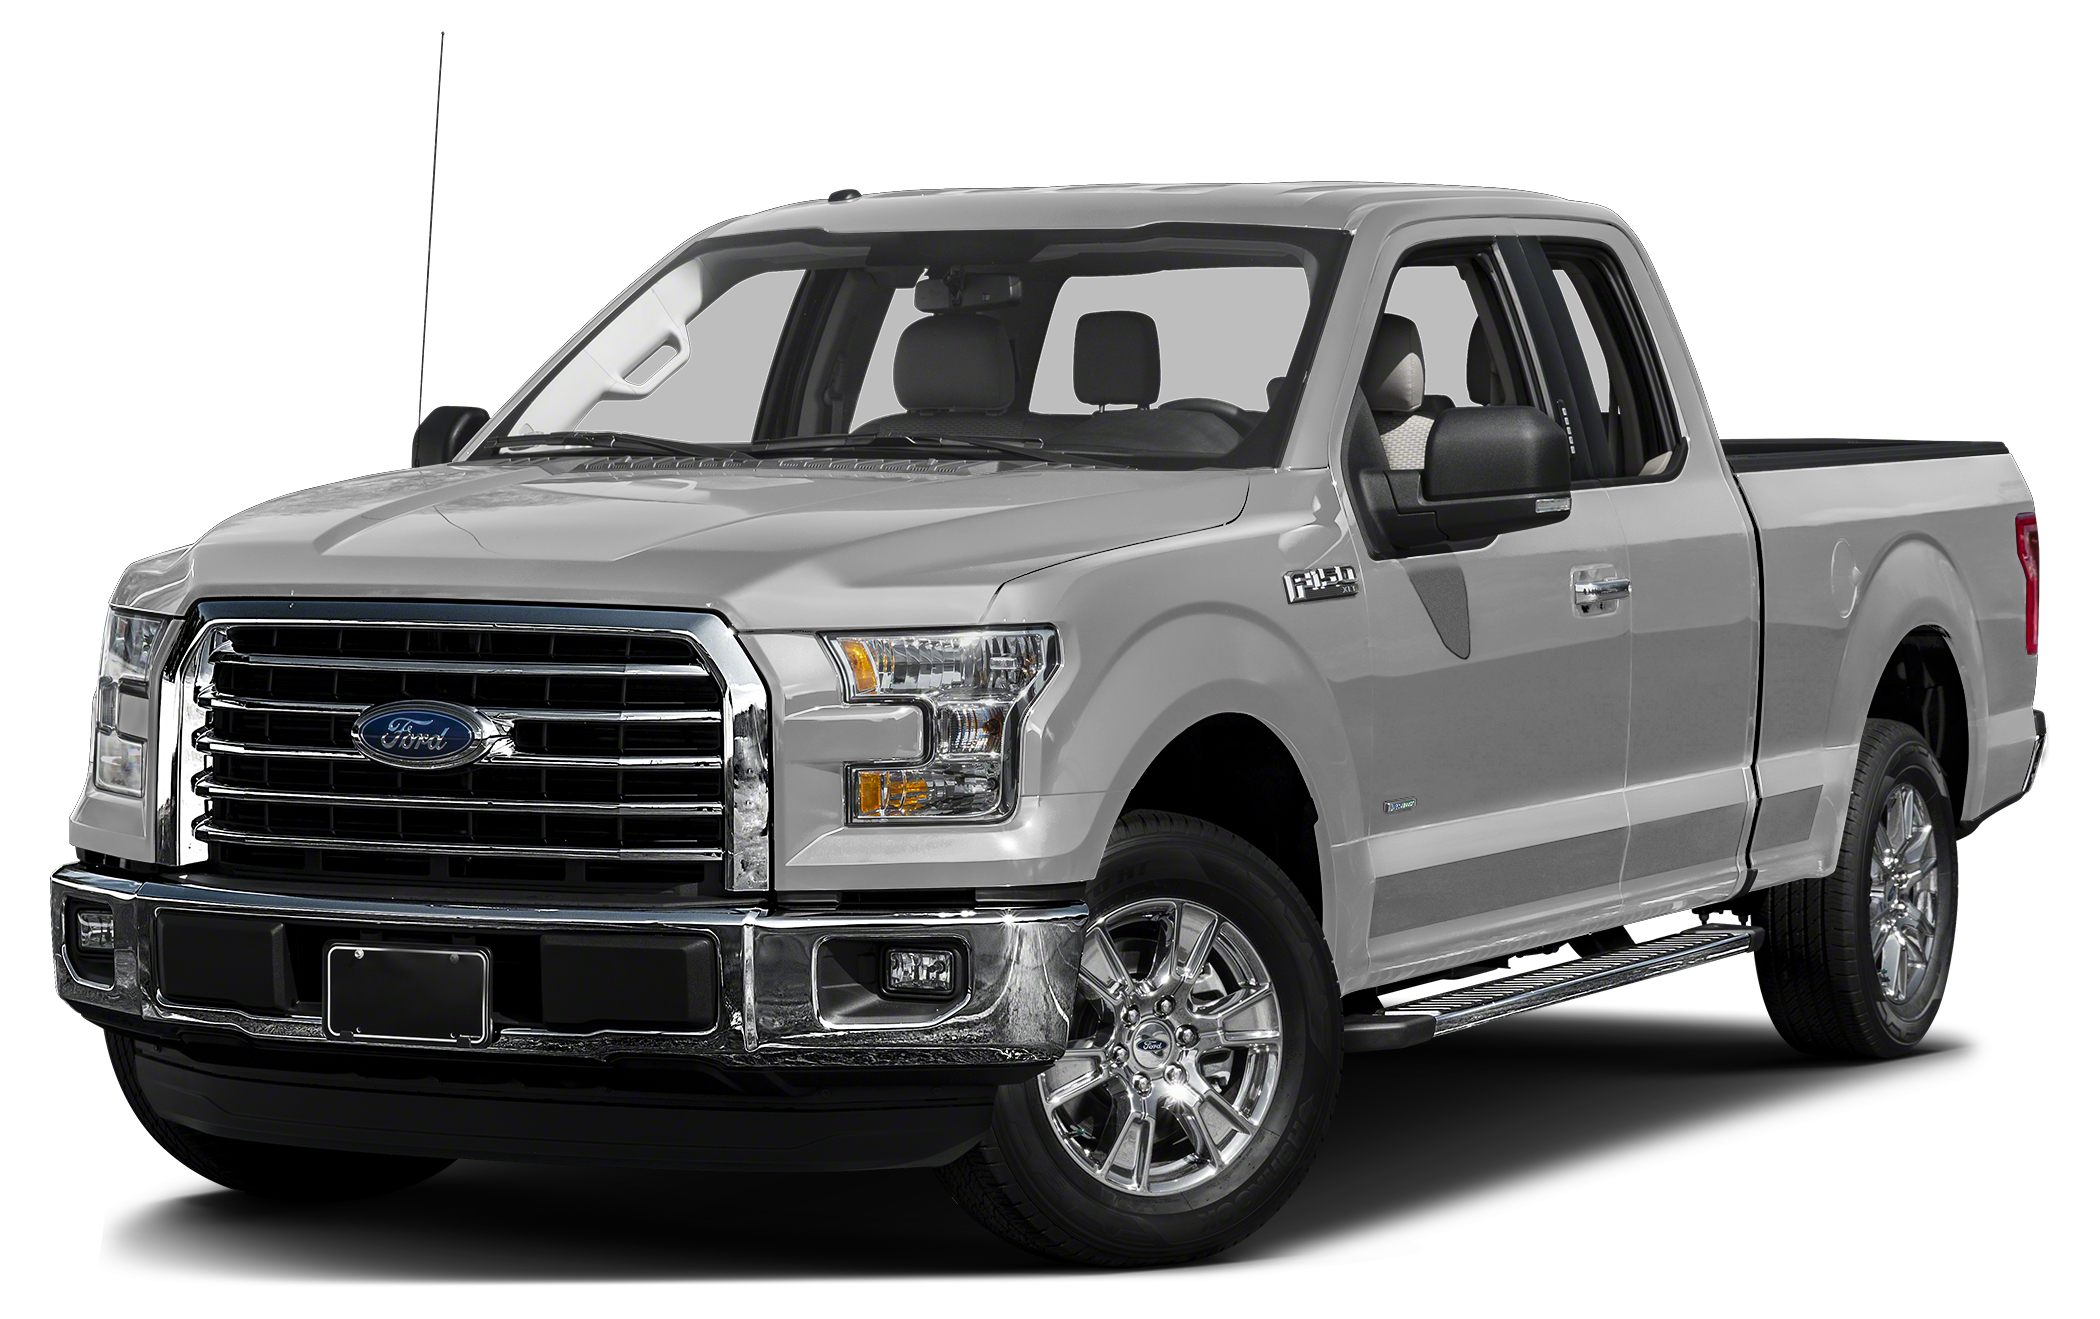 2016 Ford F-150 XLT Never worry on the road again with anti-lock brakes traction control and sid